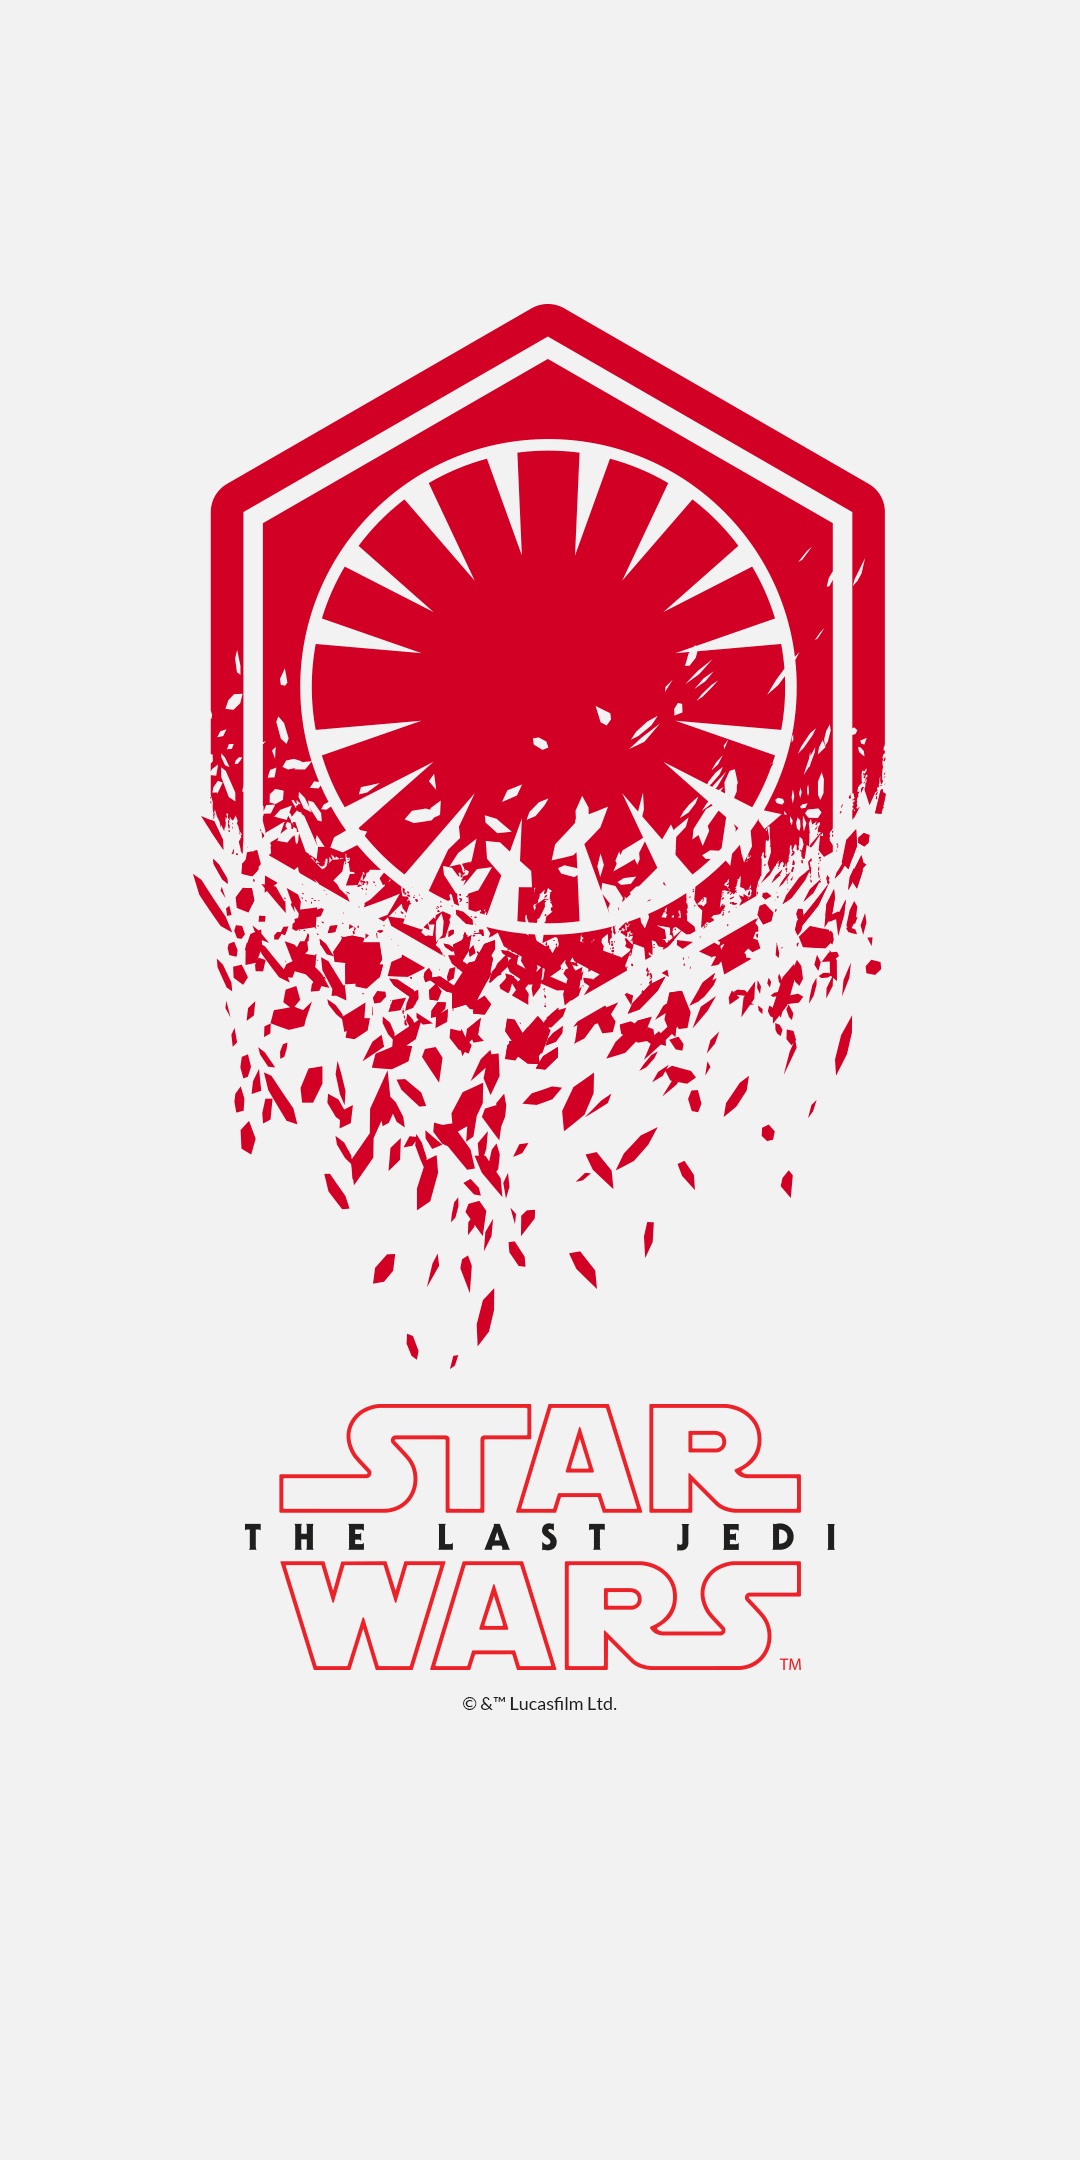 Last Jedi Iphone Wallpaper 2